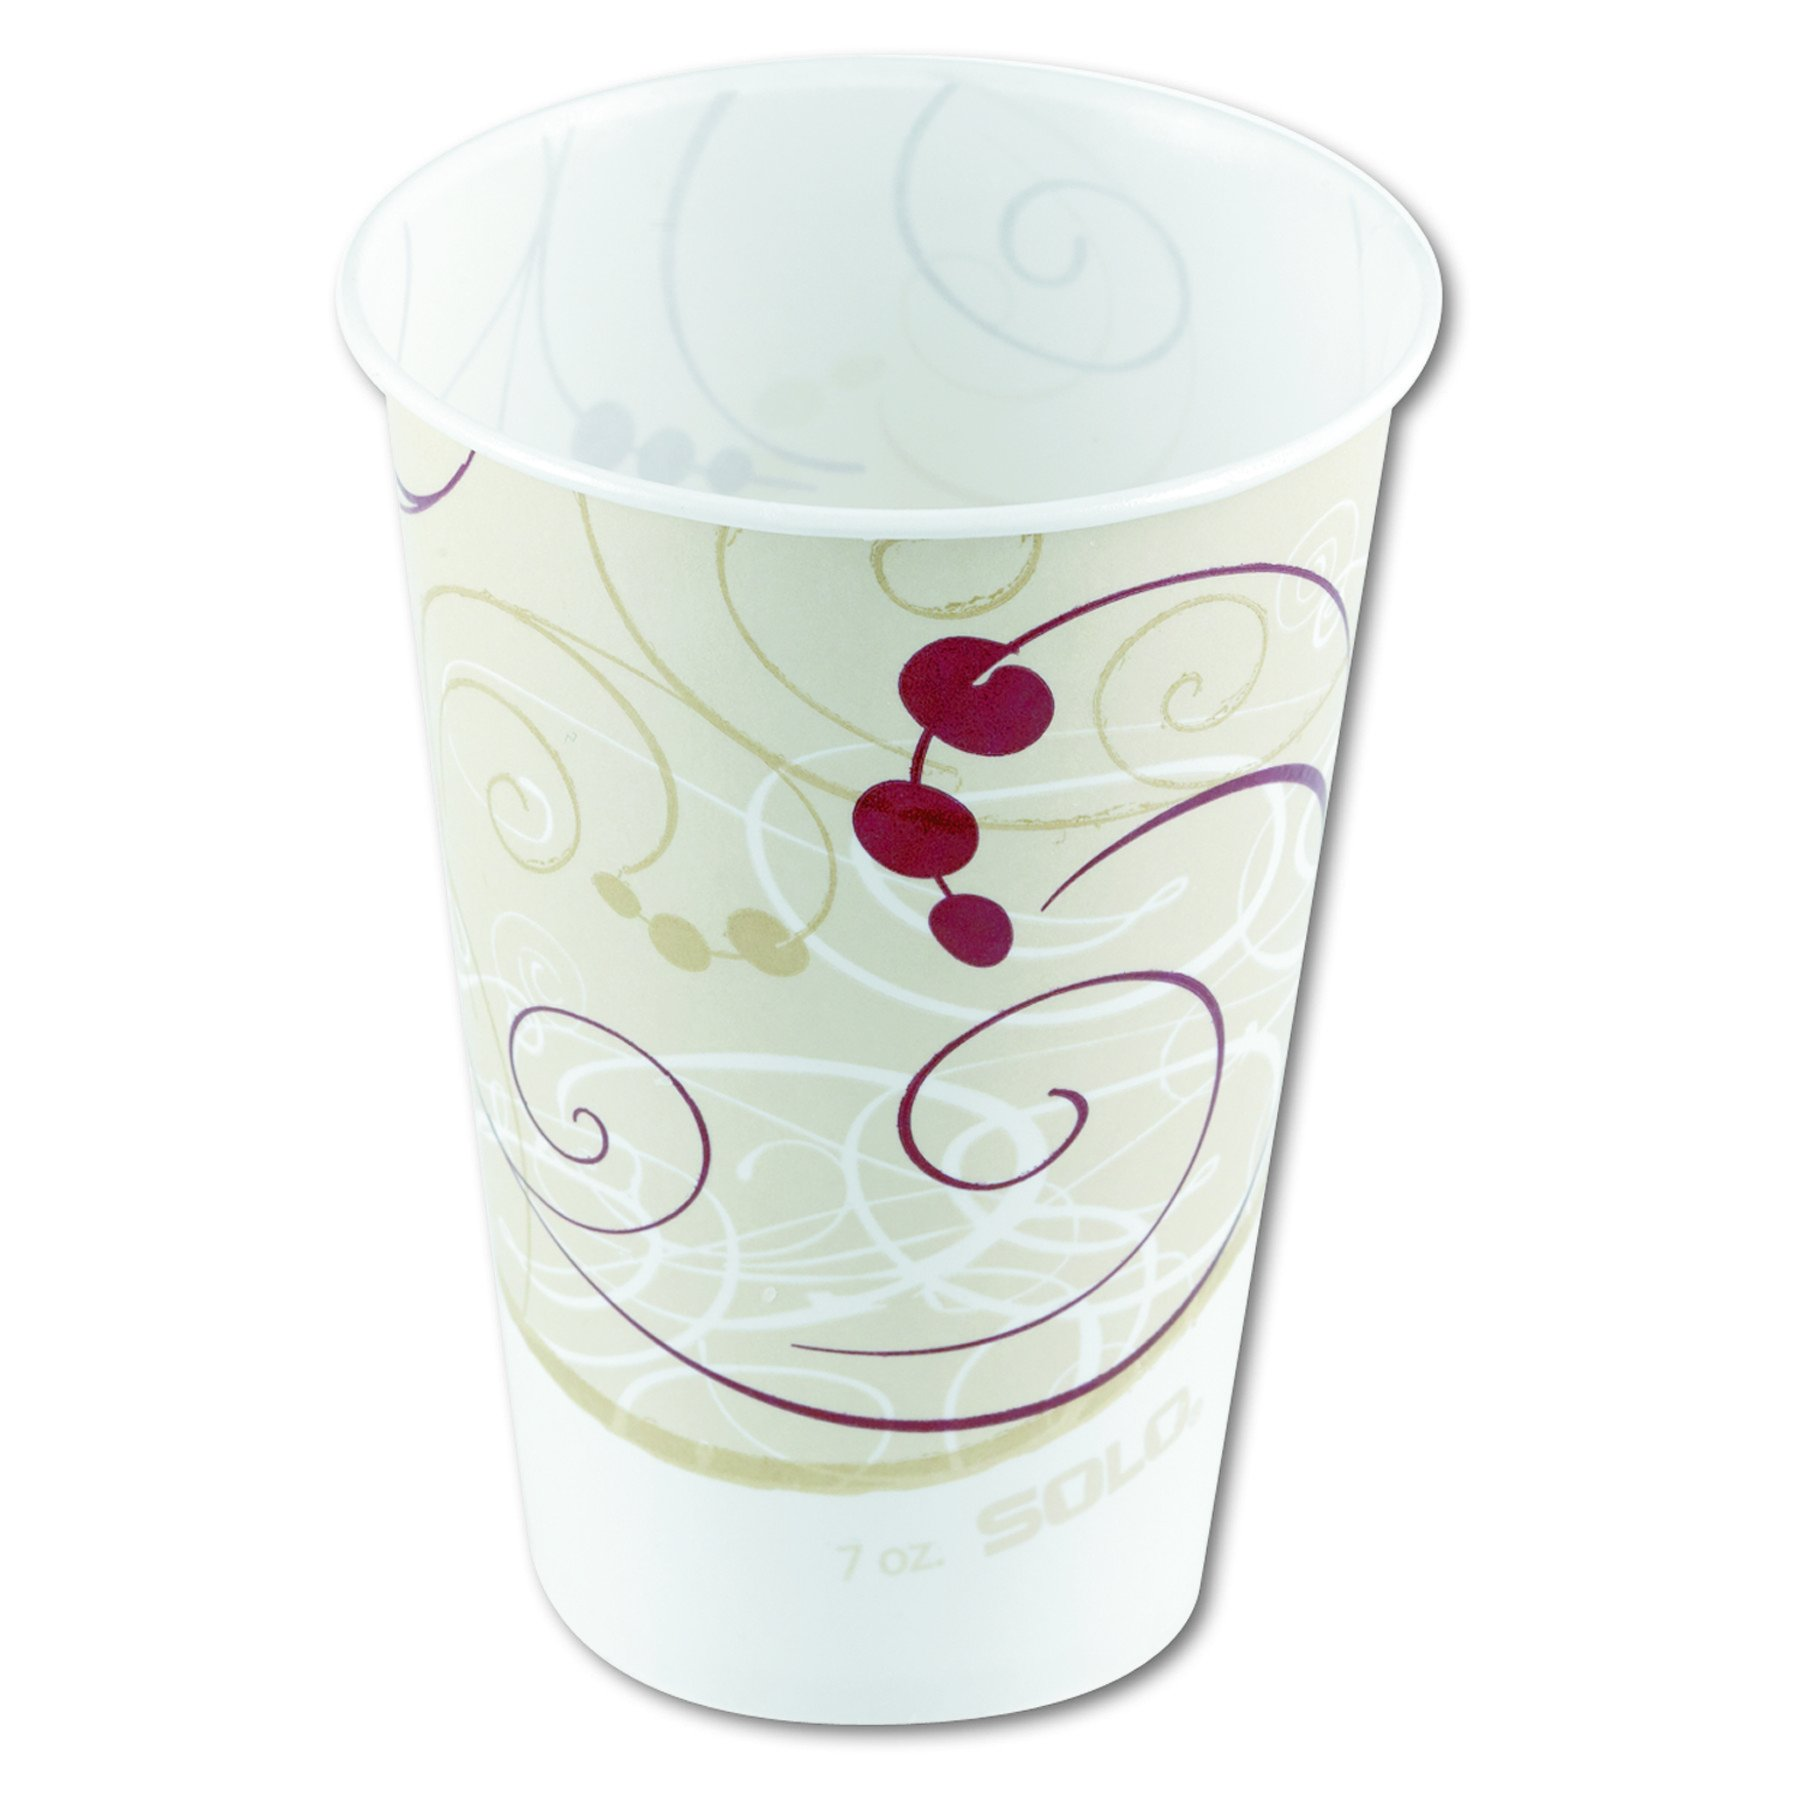 SOLO Cup Company R7NSYM Waxed Paper Cold Cups, 7 oz, Symphony Design, 100 per Pack (Case of 20 Packs) by Solo Foodservice (Image #1)